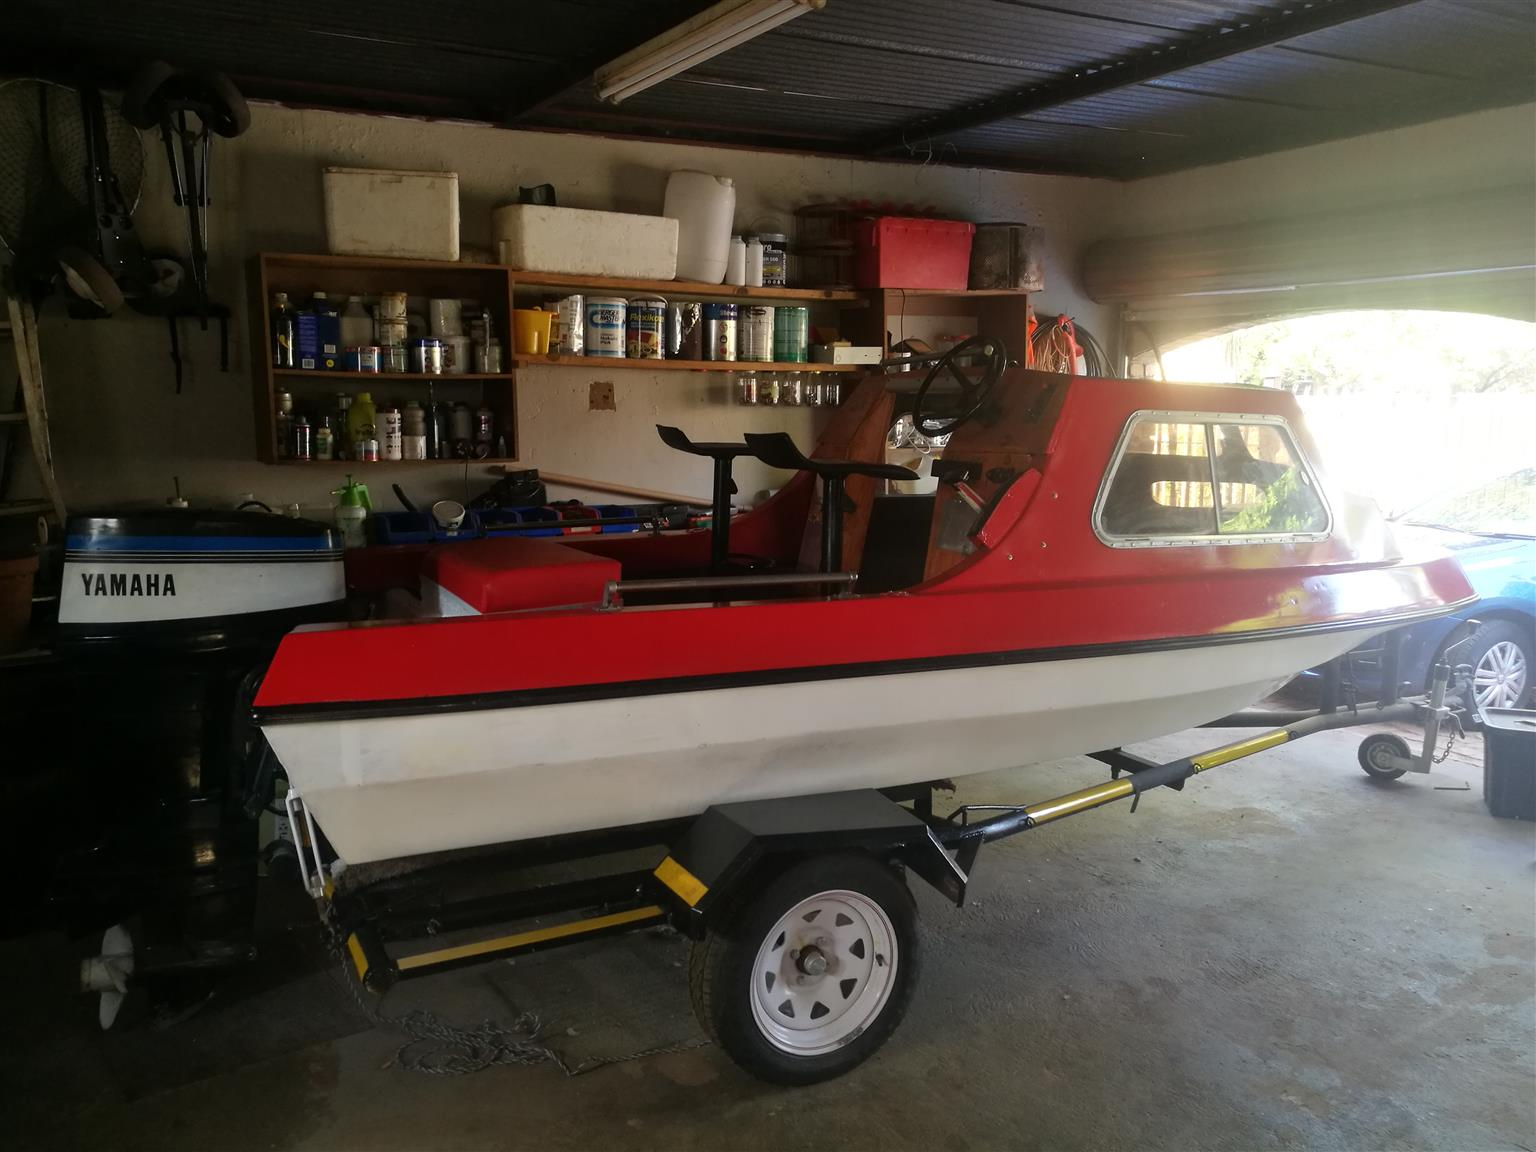 Cabin cruise with 65hp Yamaha motor for sale R22900